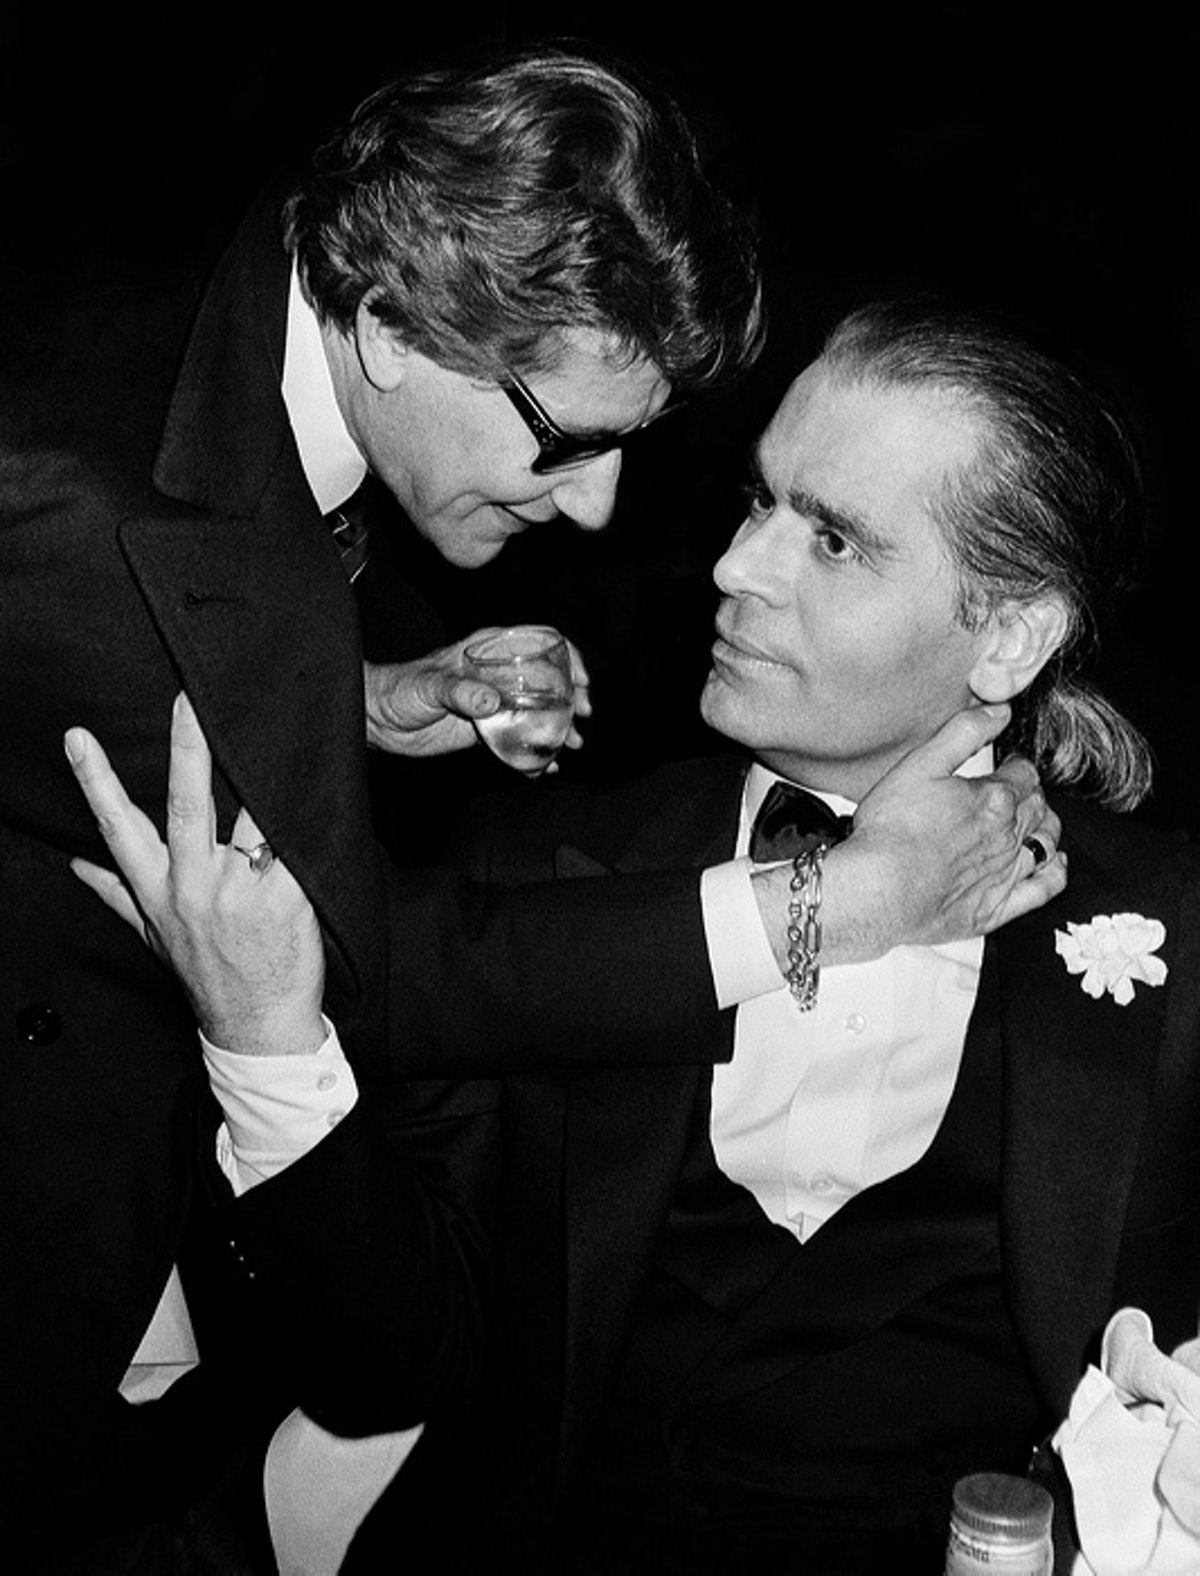 Yves Saint Laurent and Karl Lagerfeld, Le Palace's 5th Anniversary, 1983.